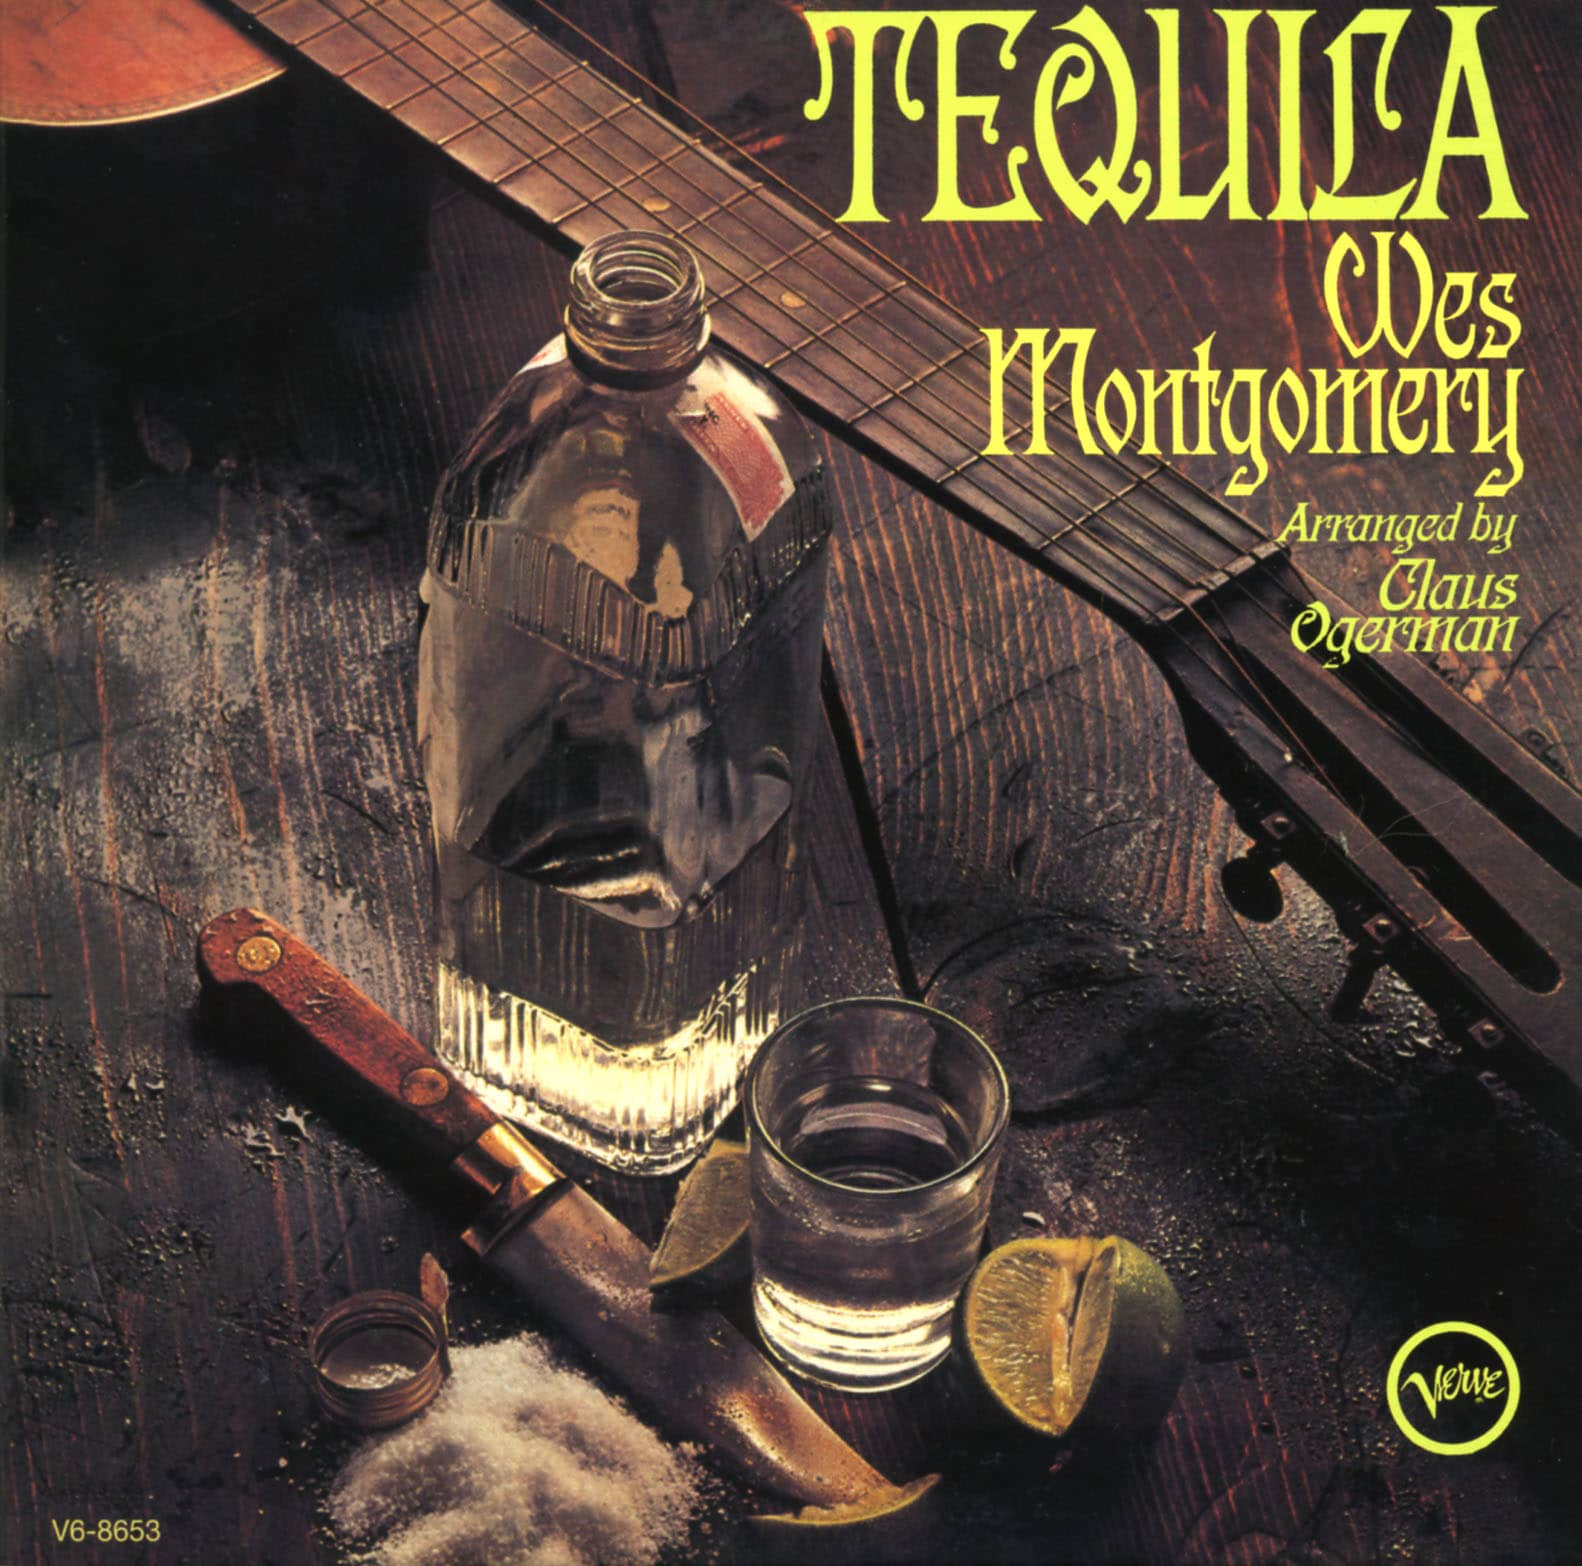 Wes Montgomery Tequila